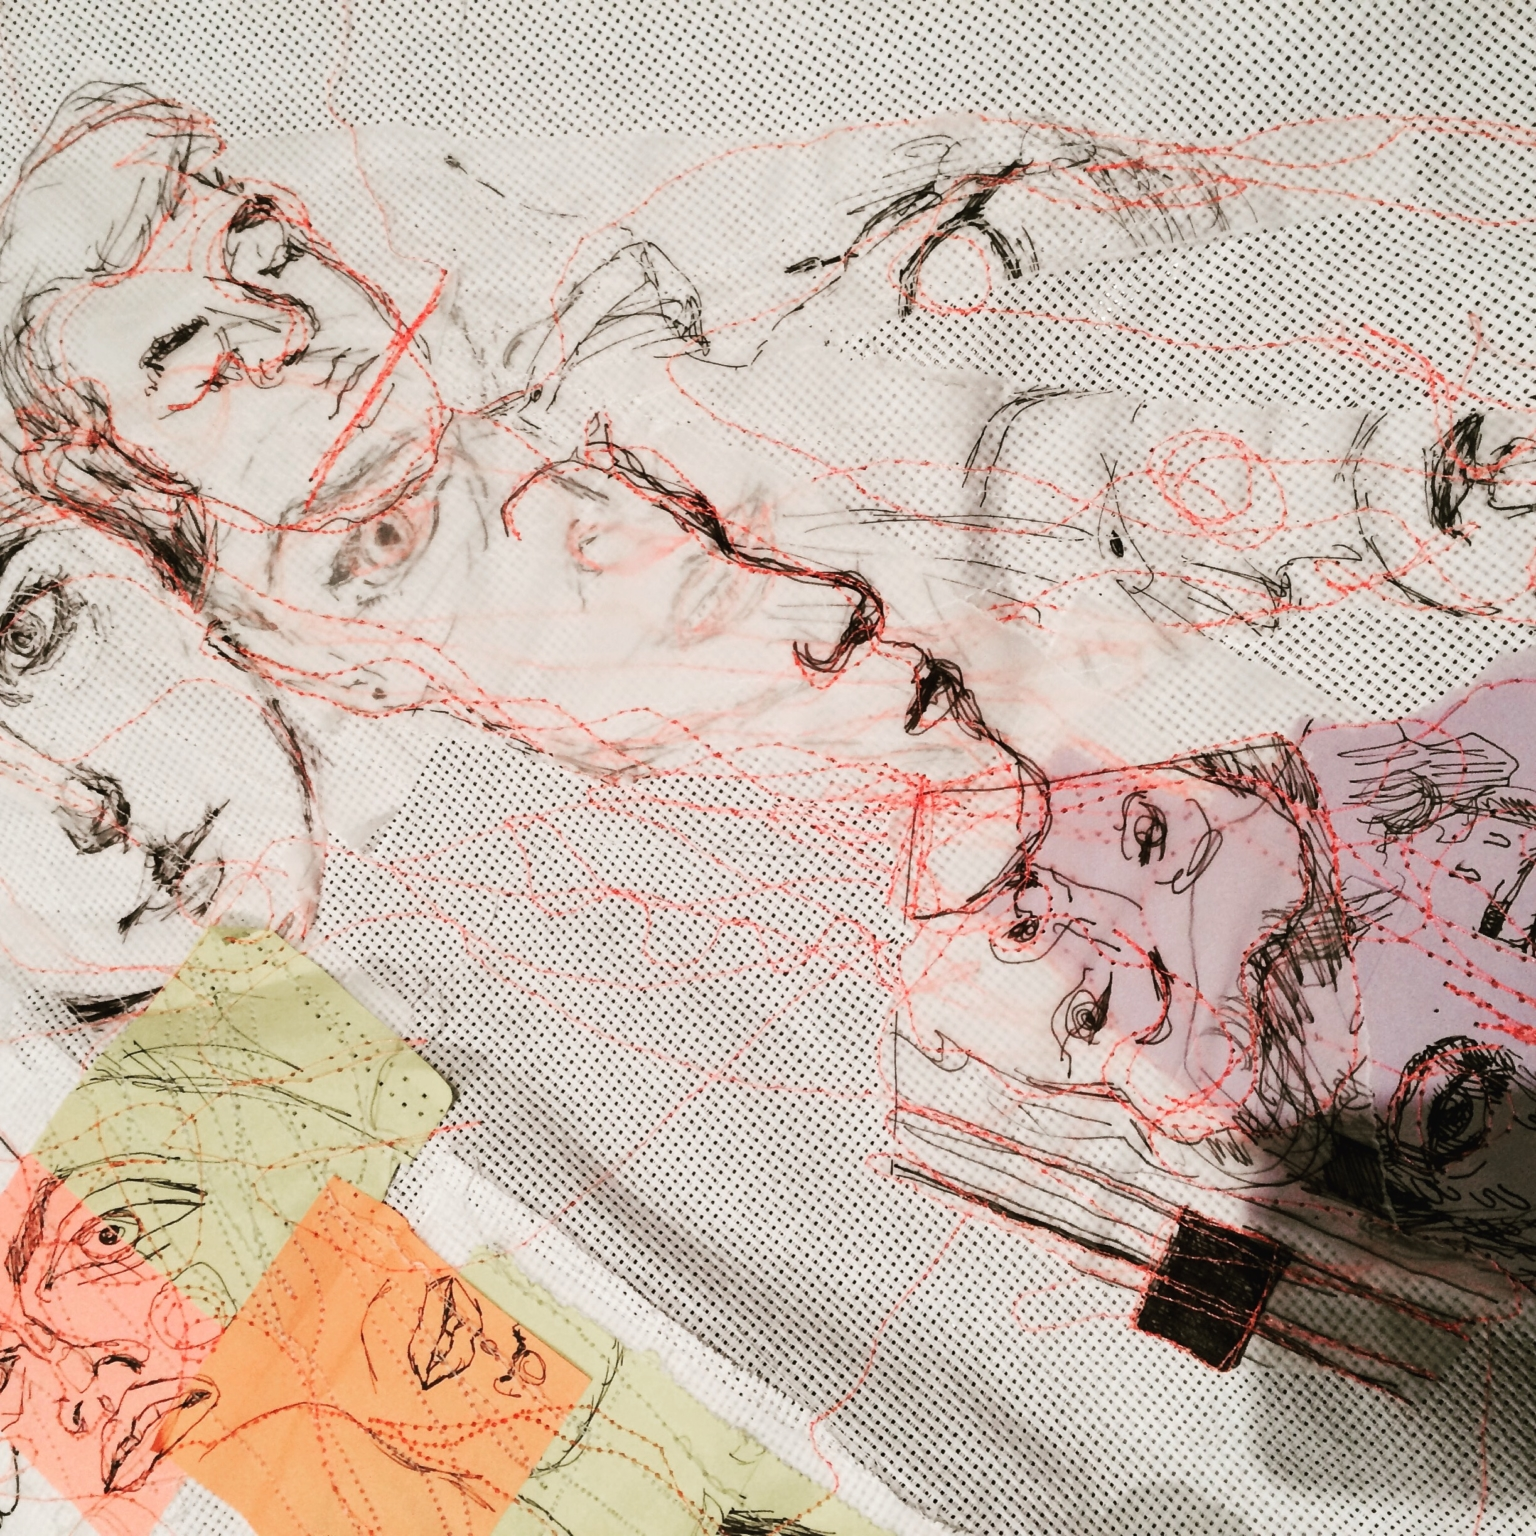 Detail from the contributed portraits of participants, stitched to create a £D sculptural heart.